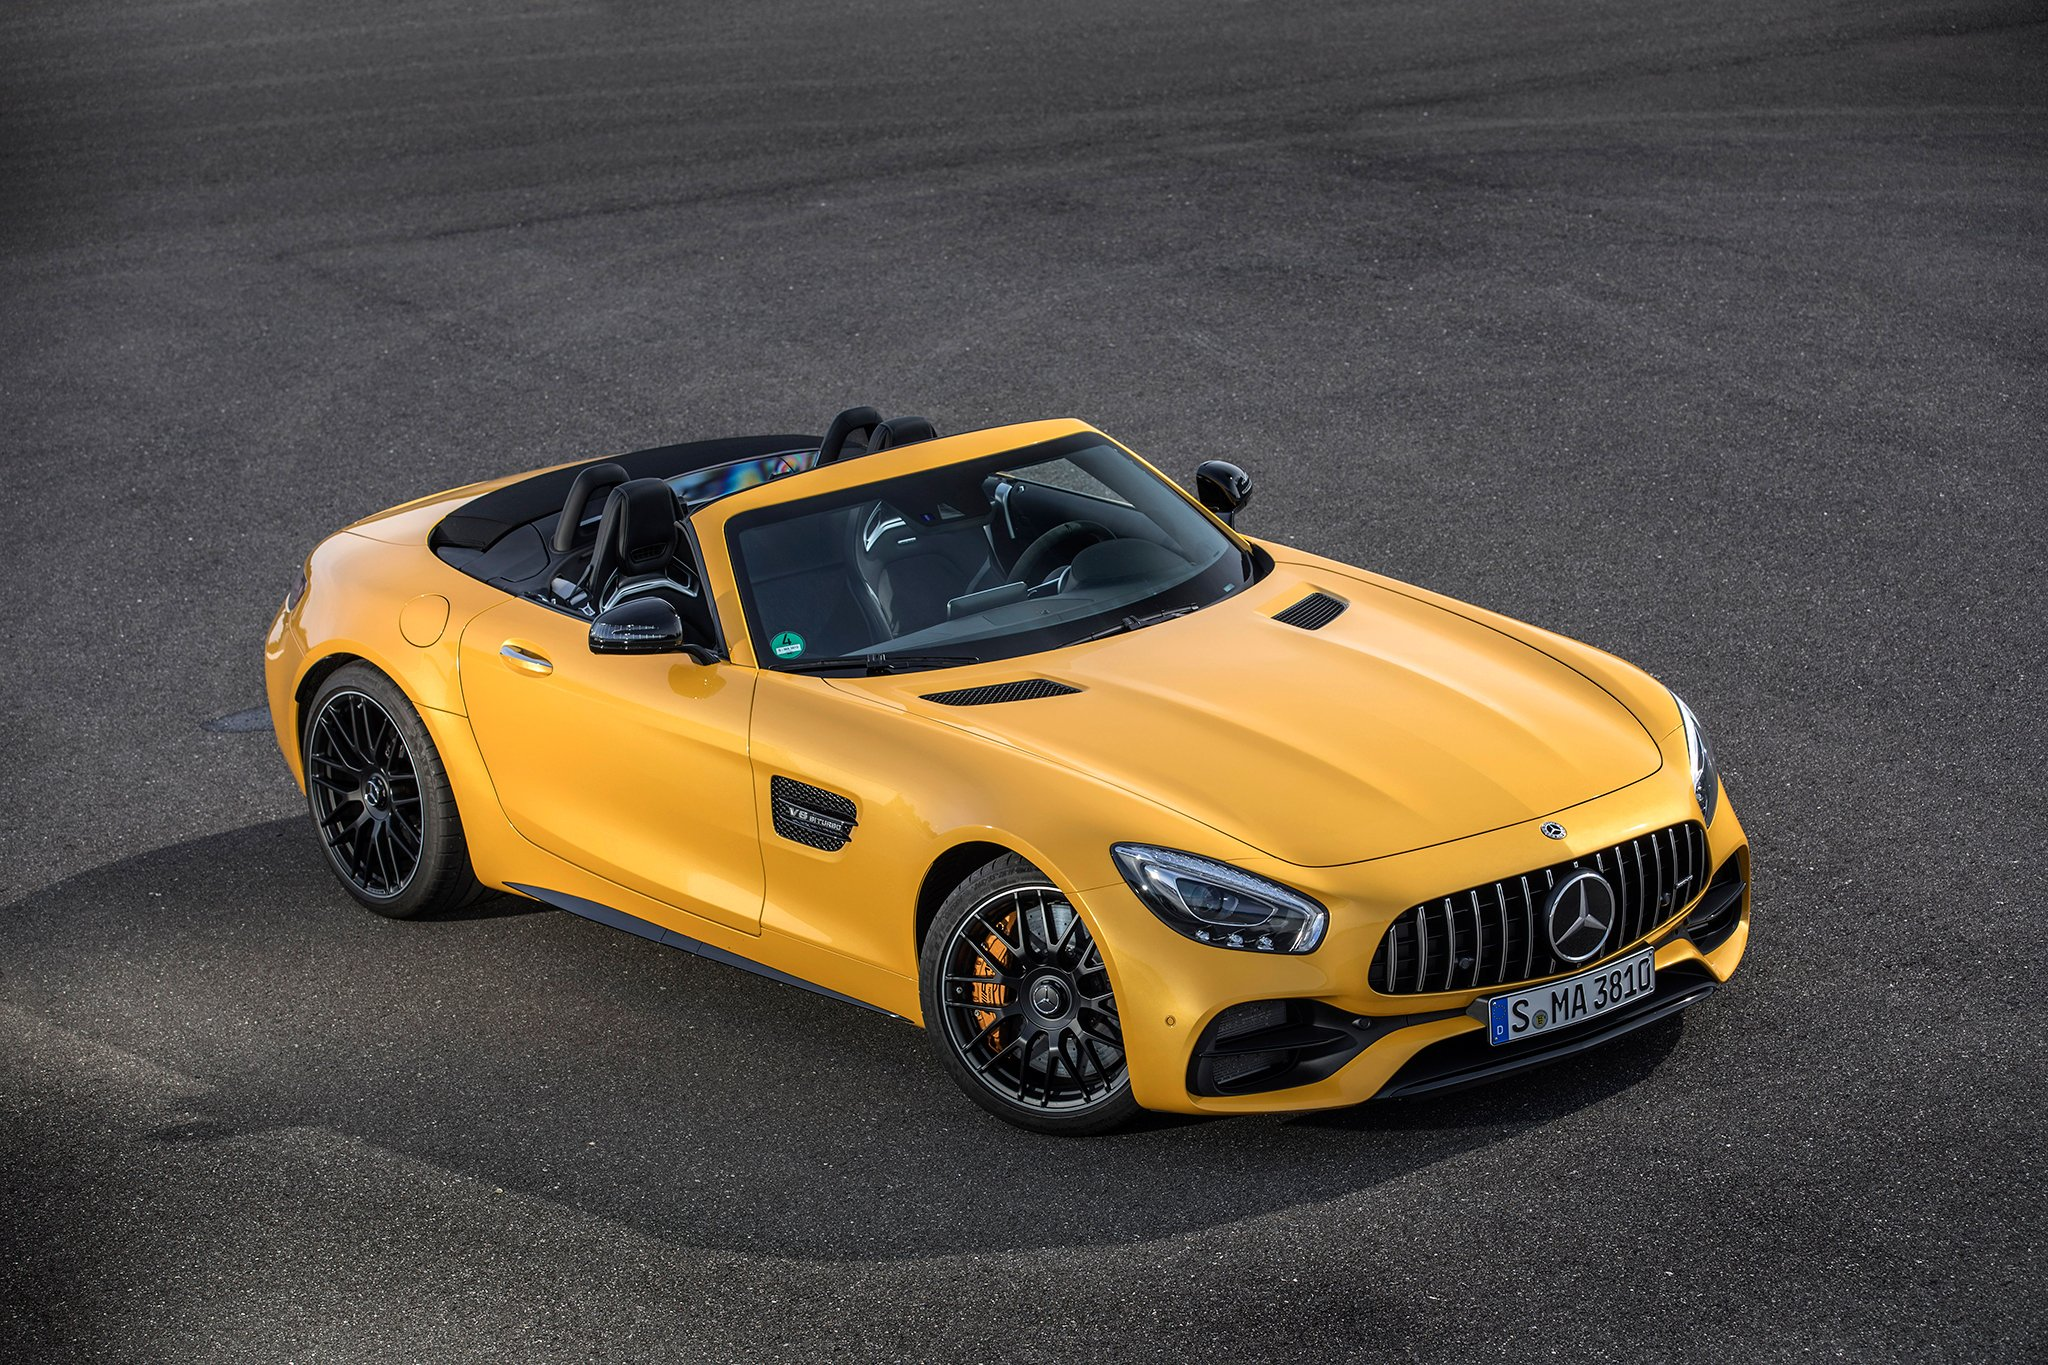 Mercedes amg gt family desktop wallpapers photos for Mercedes benz amg gt coupe price